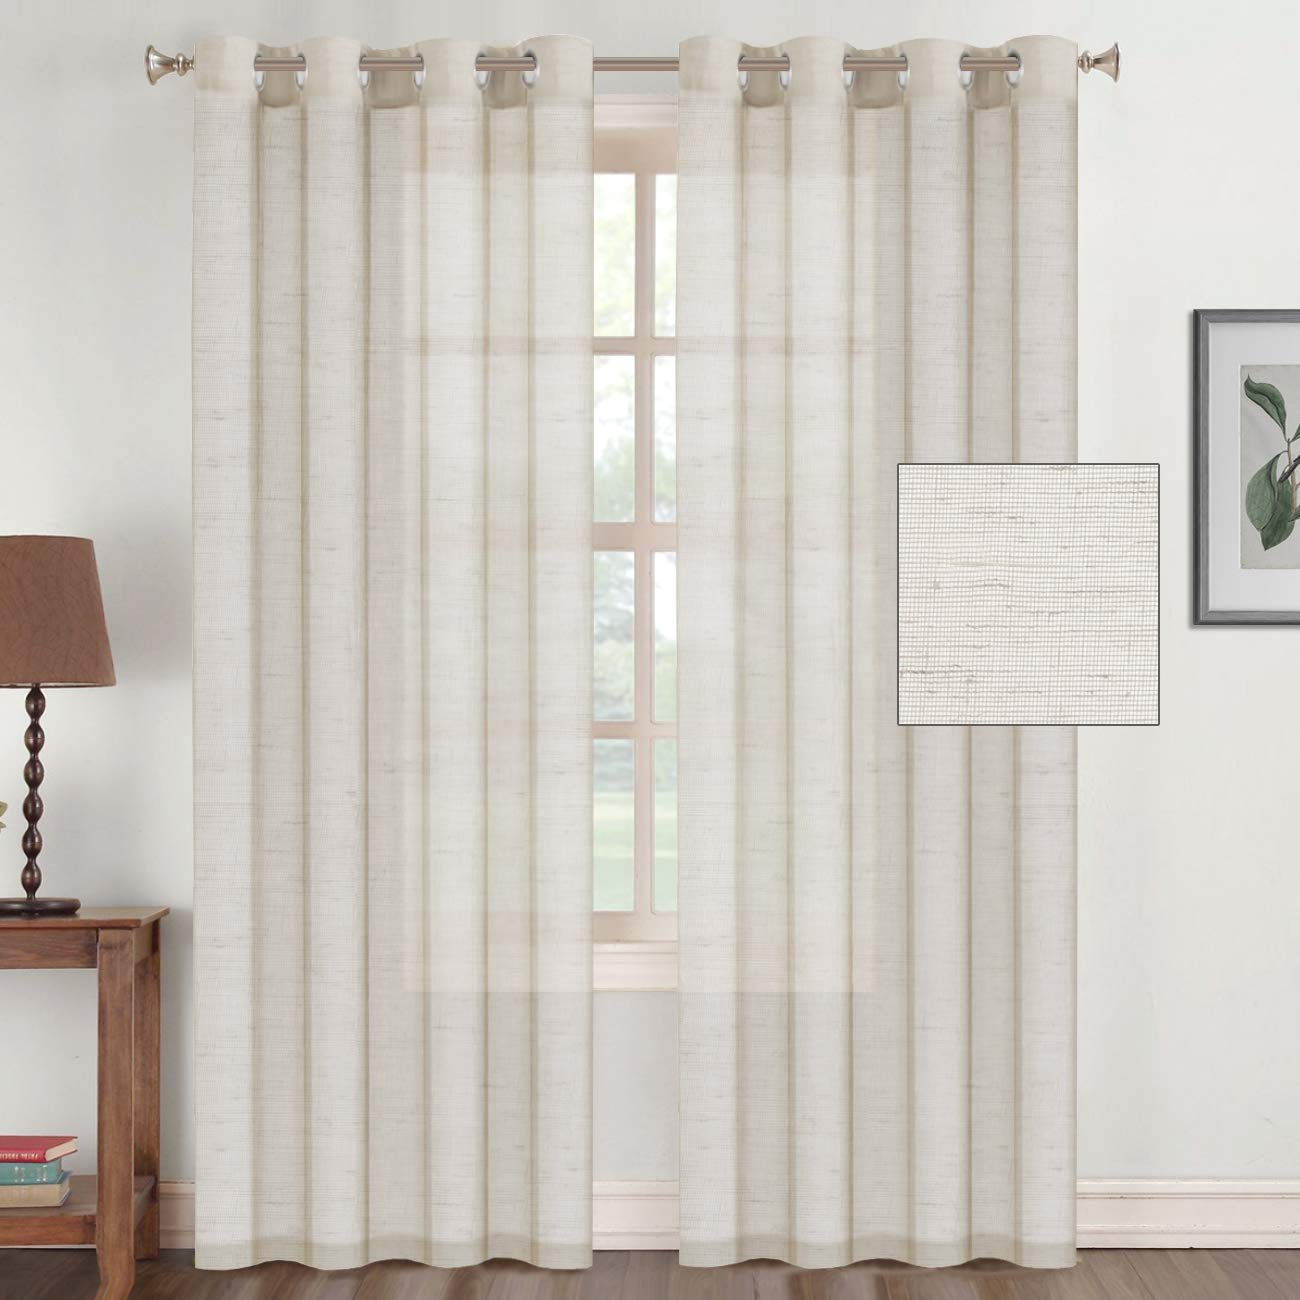 Flamingo P Linen Curtains for Living Room 84 inch Nickel Grommet Linen Sheer Curtains for Patio Doors -Set of 2, Natural